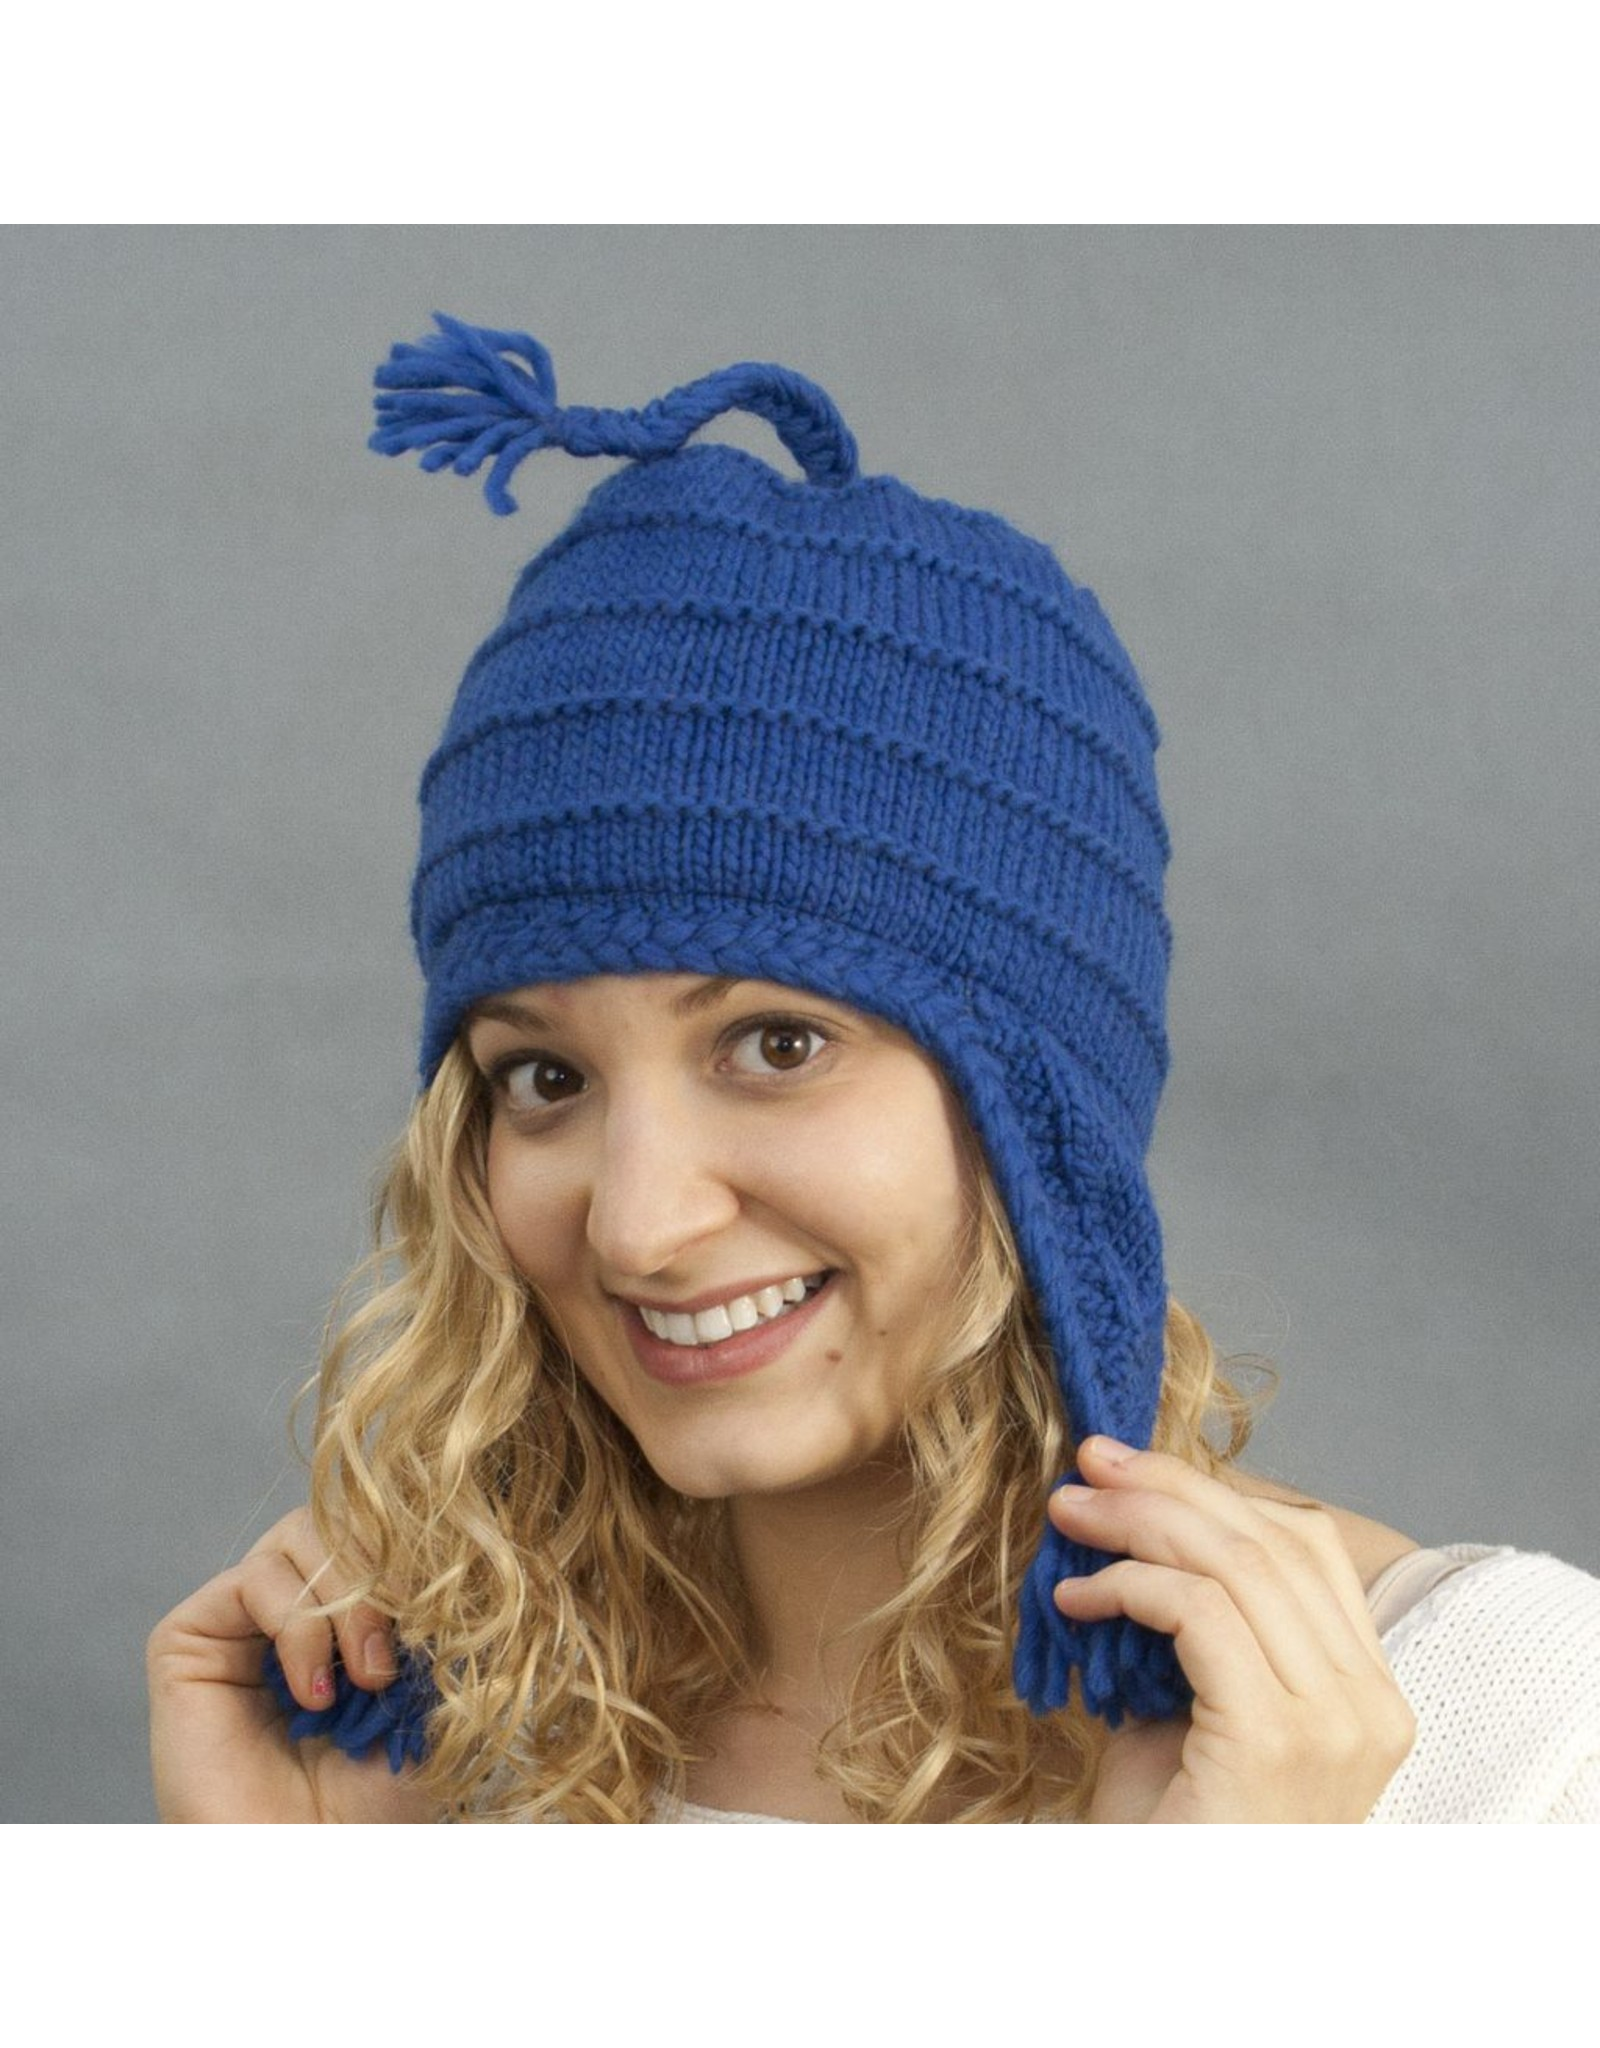 The Sweater Venture Tasseled Flap Cap